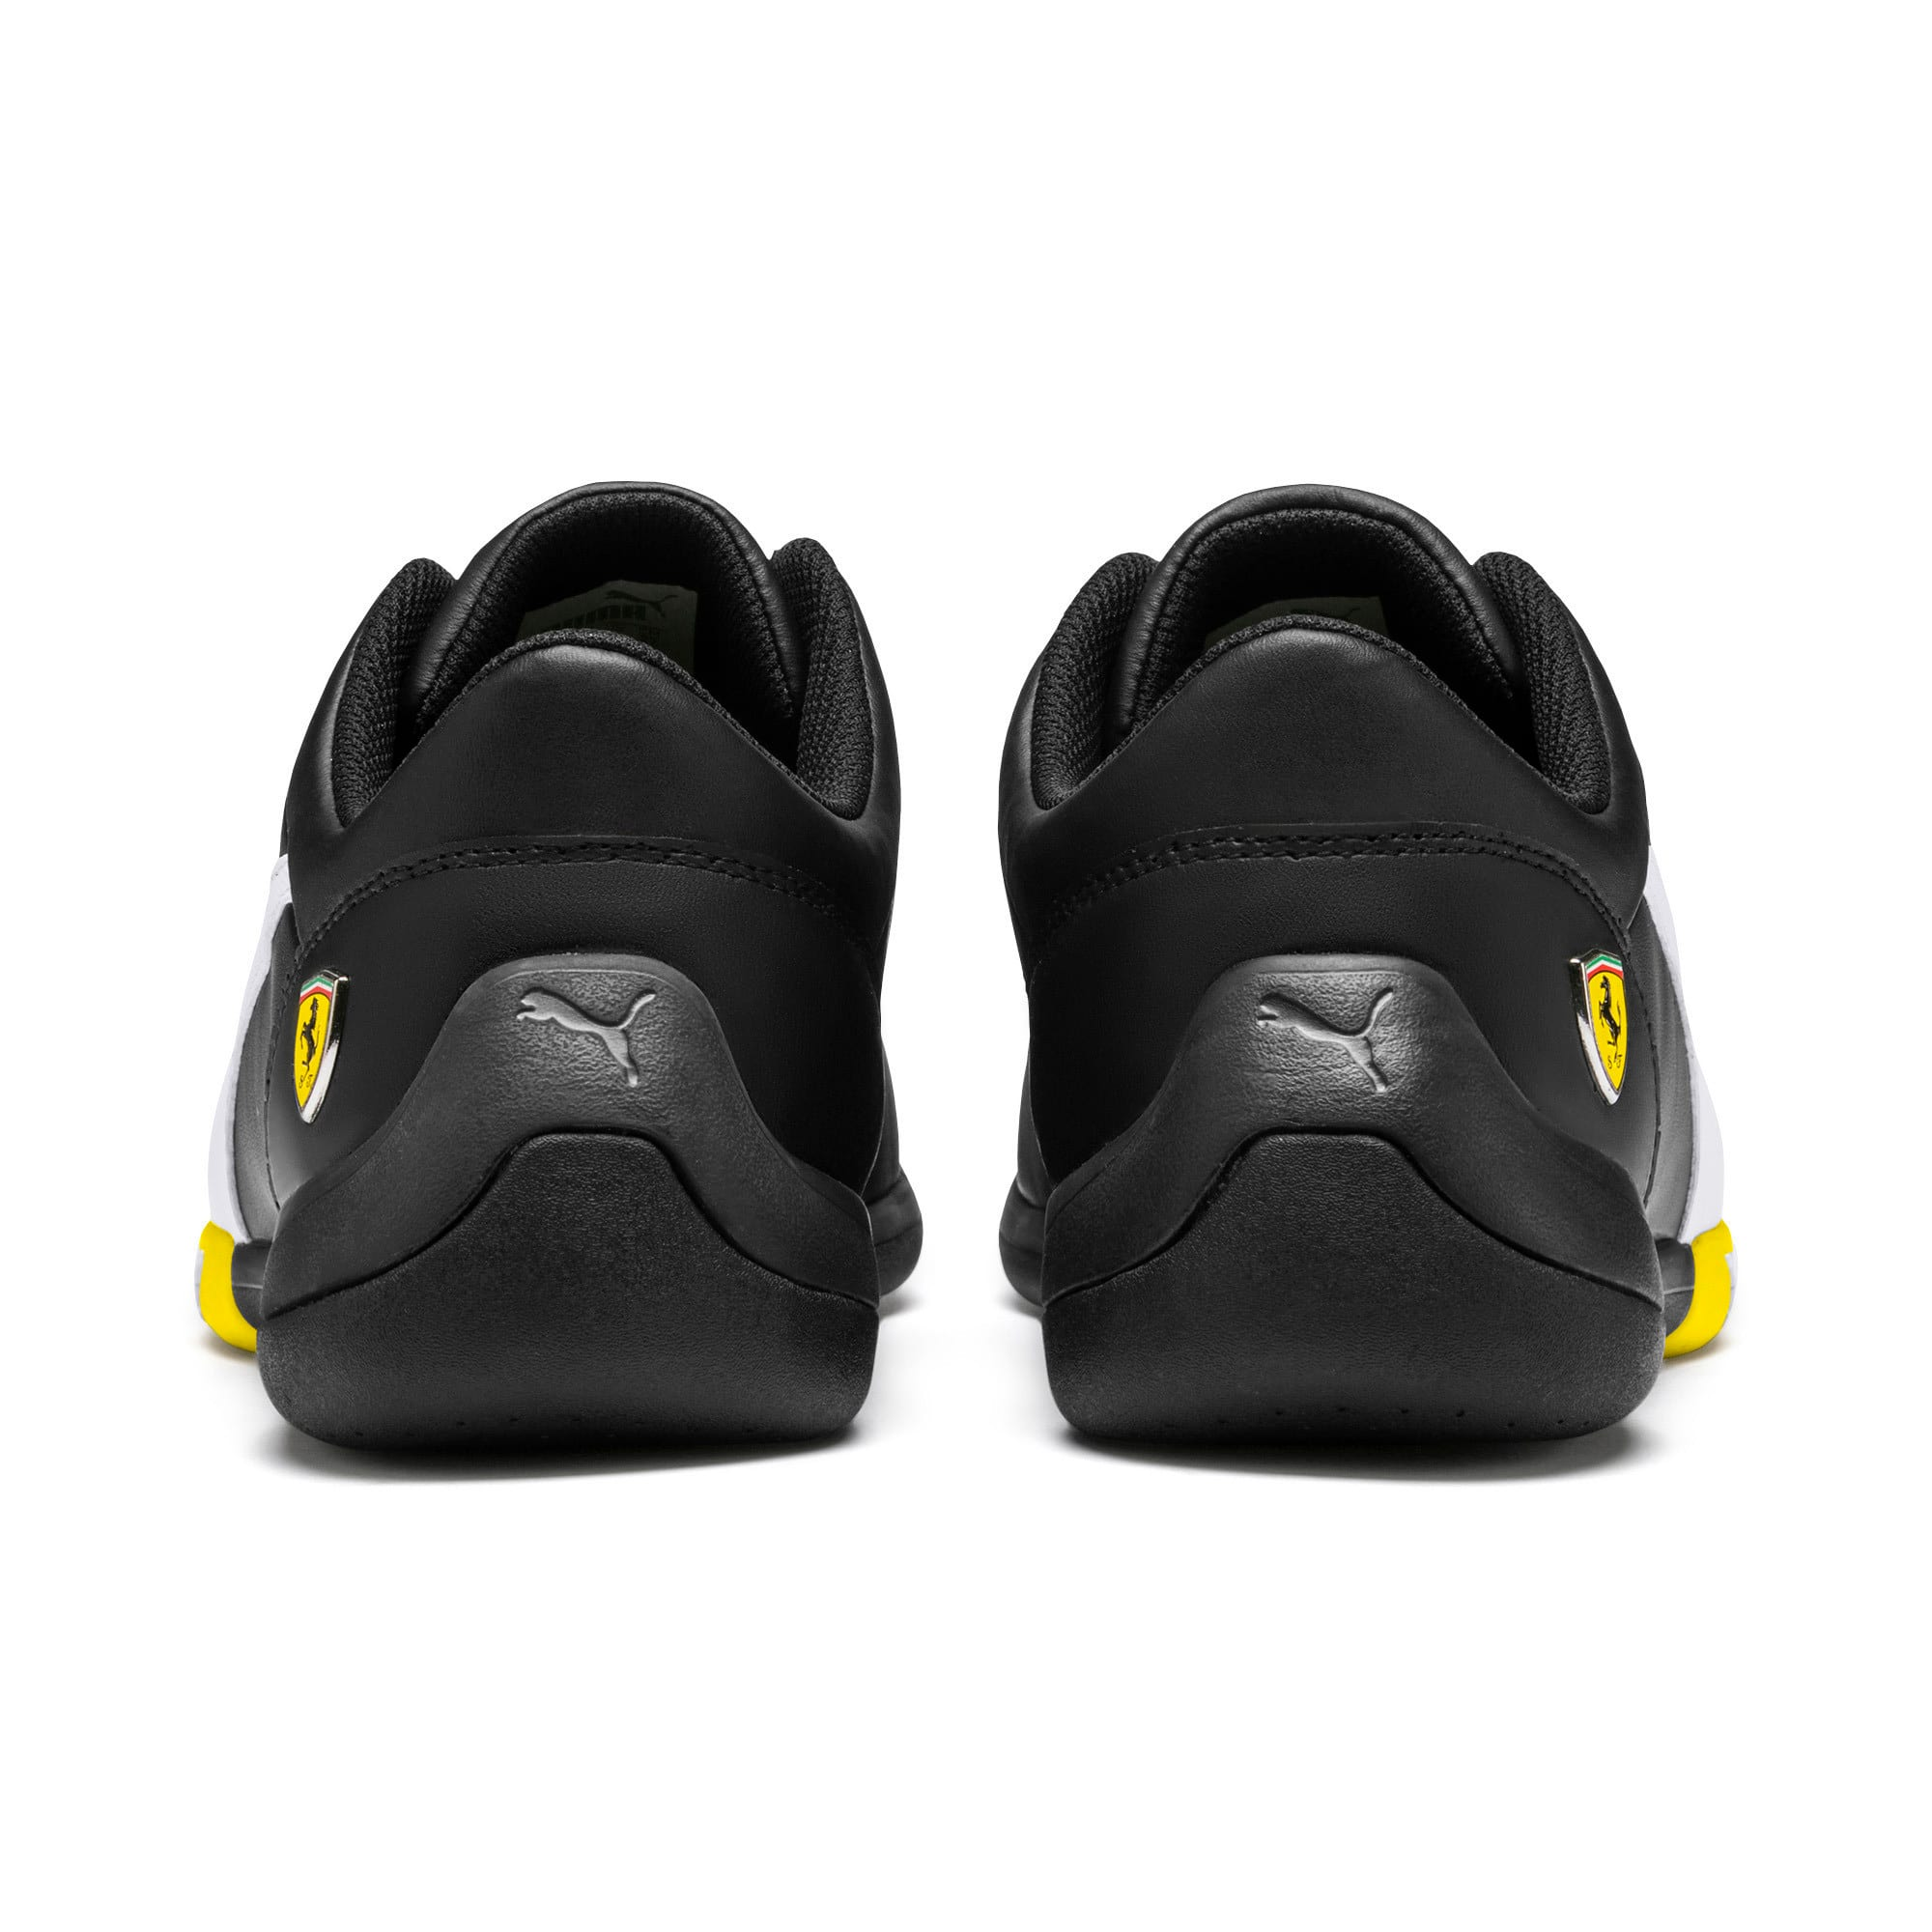 Thumbnail 4 of Ferrari Kart Cat III Sneaker, Black-White-Blazing Yellow, medium